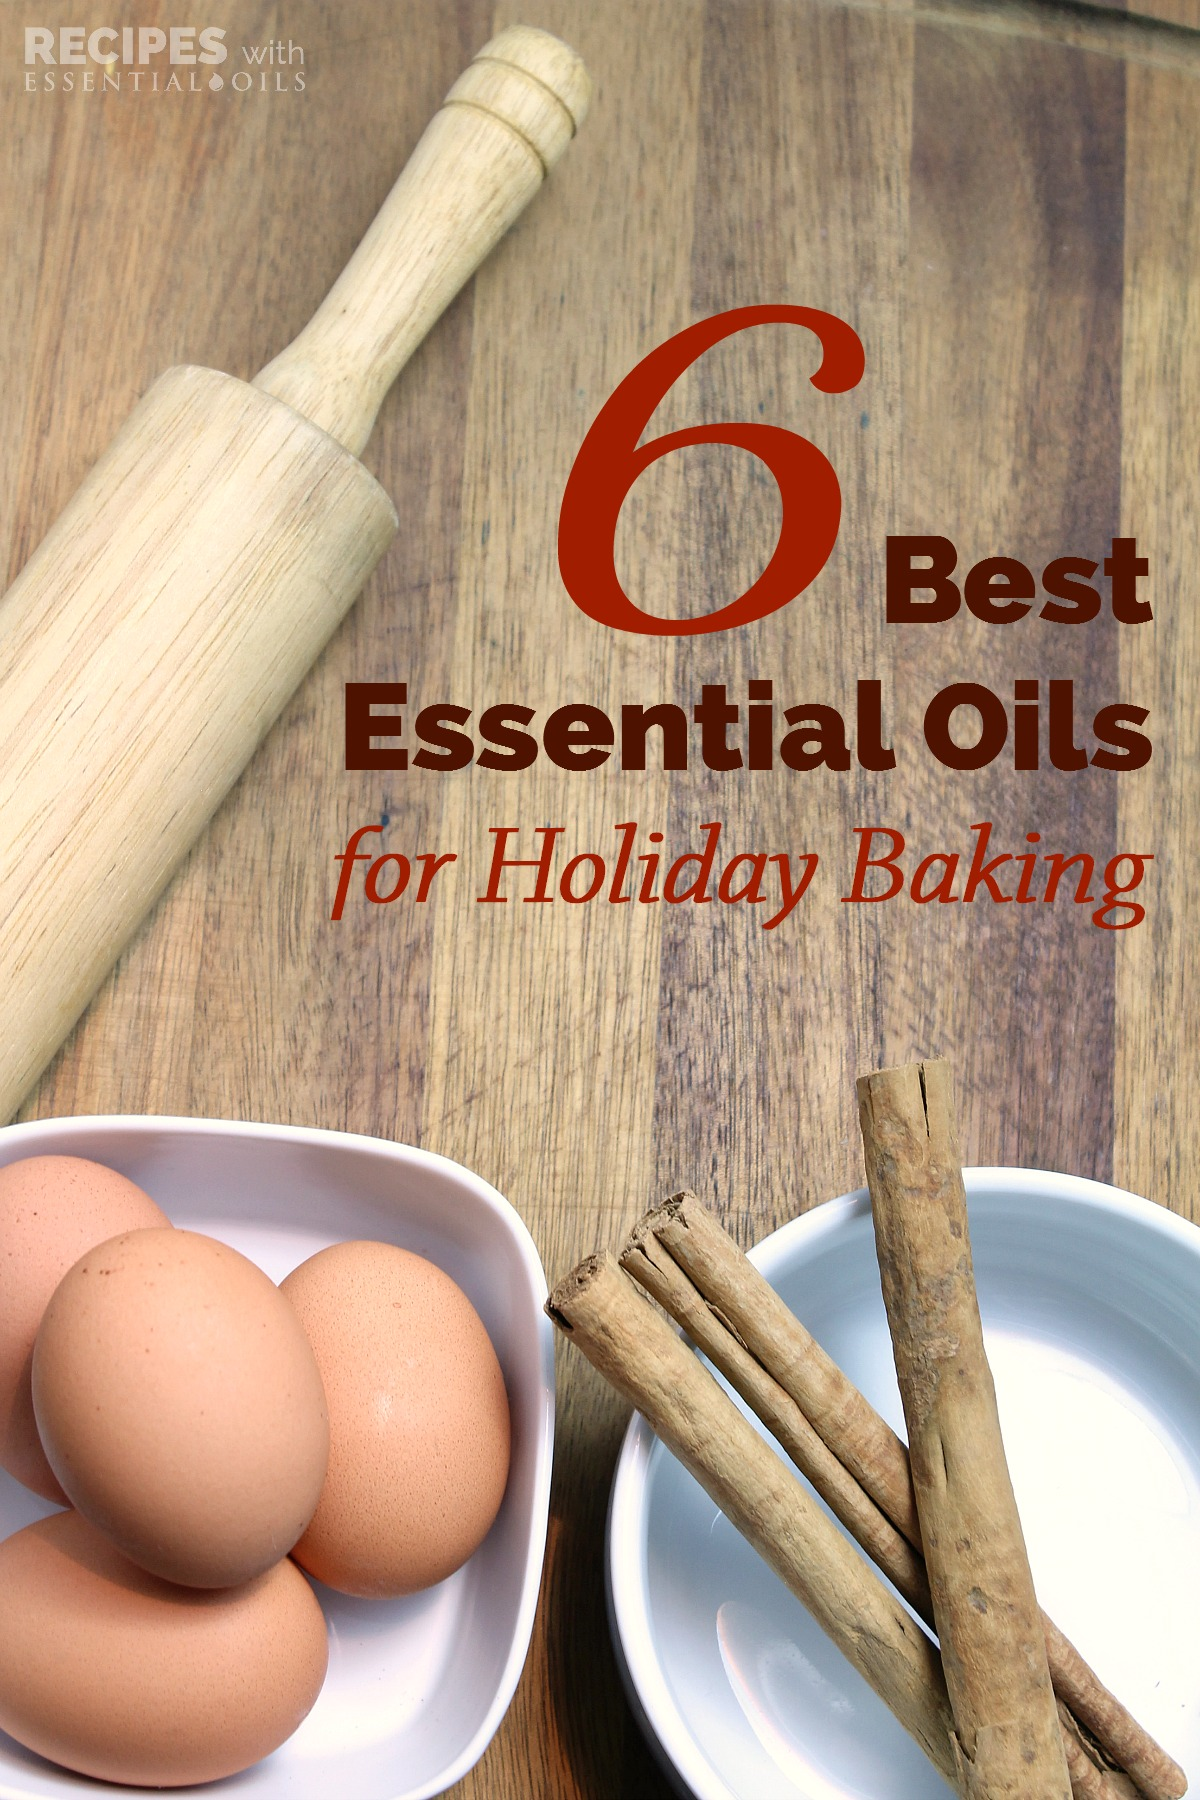 6 Best Essential Oils for Holiday Baking from RecipesWithEssentialOils.com